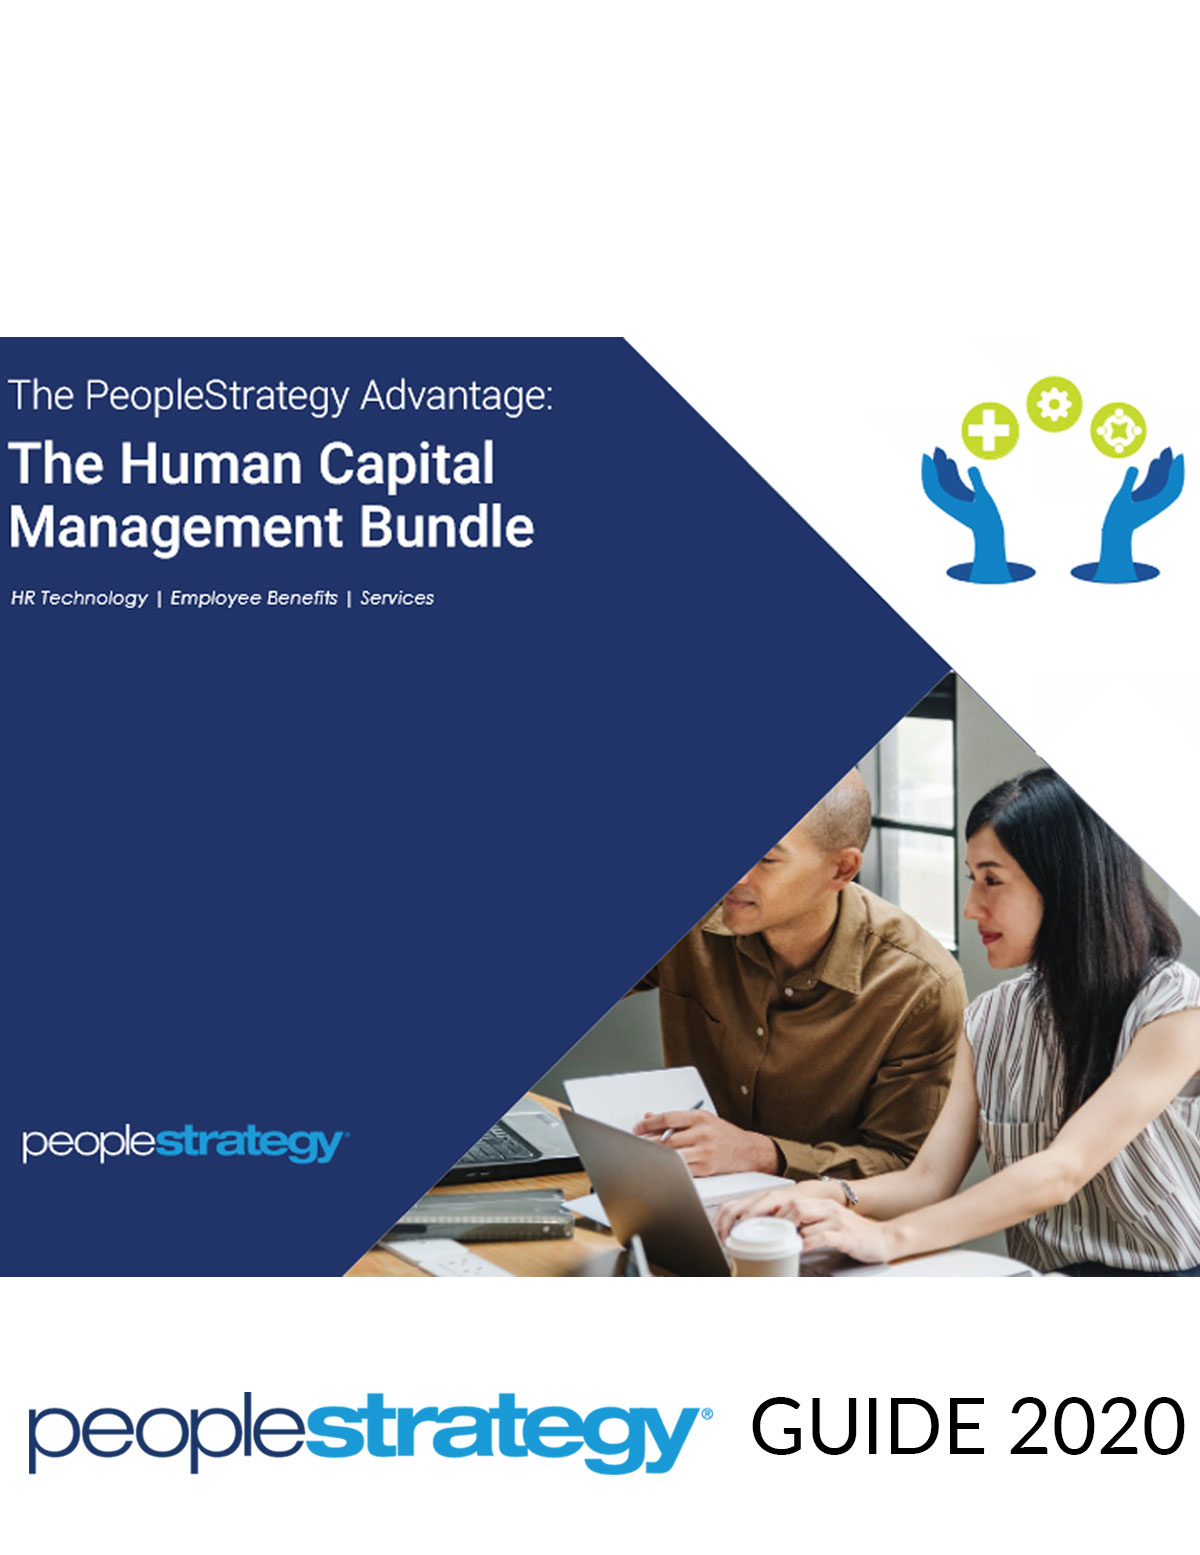 The PeopleStrategy Advantage: The Human Capital Management Bundle